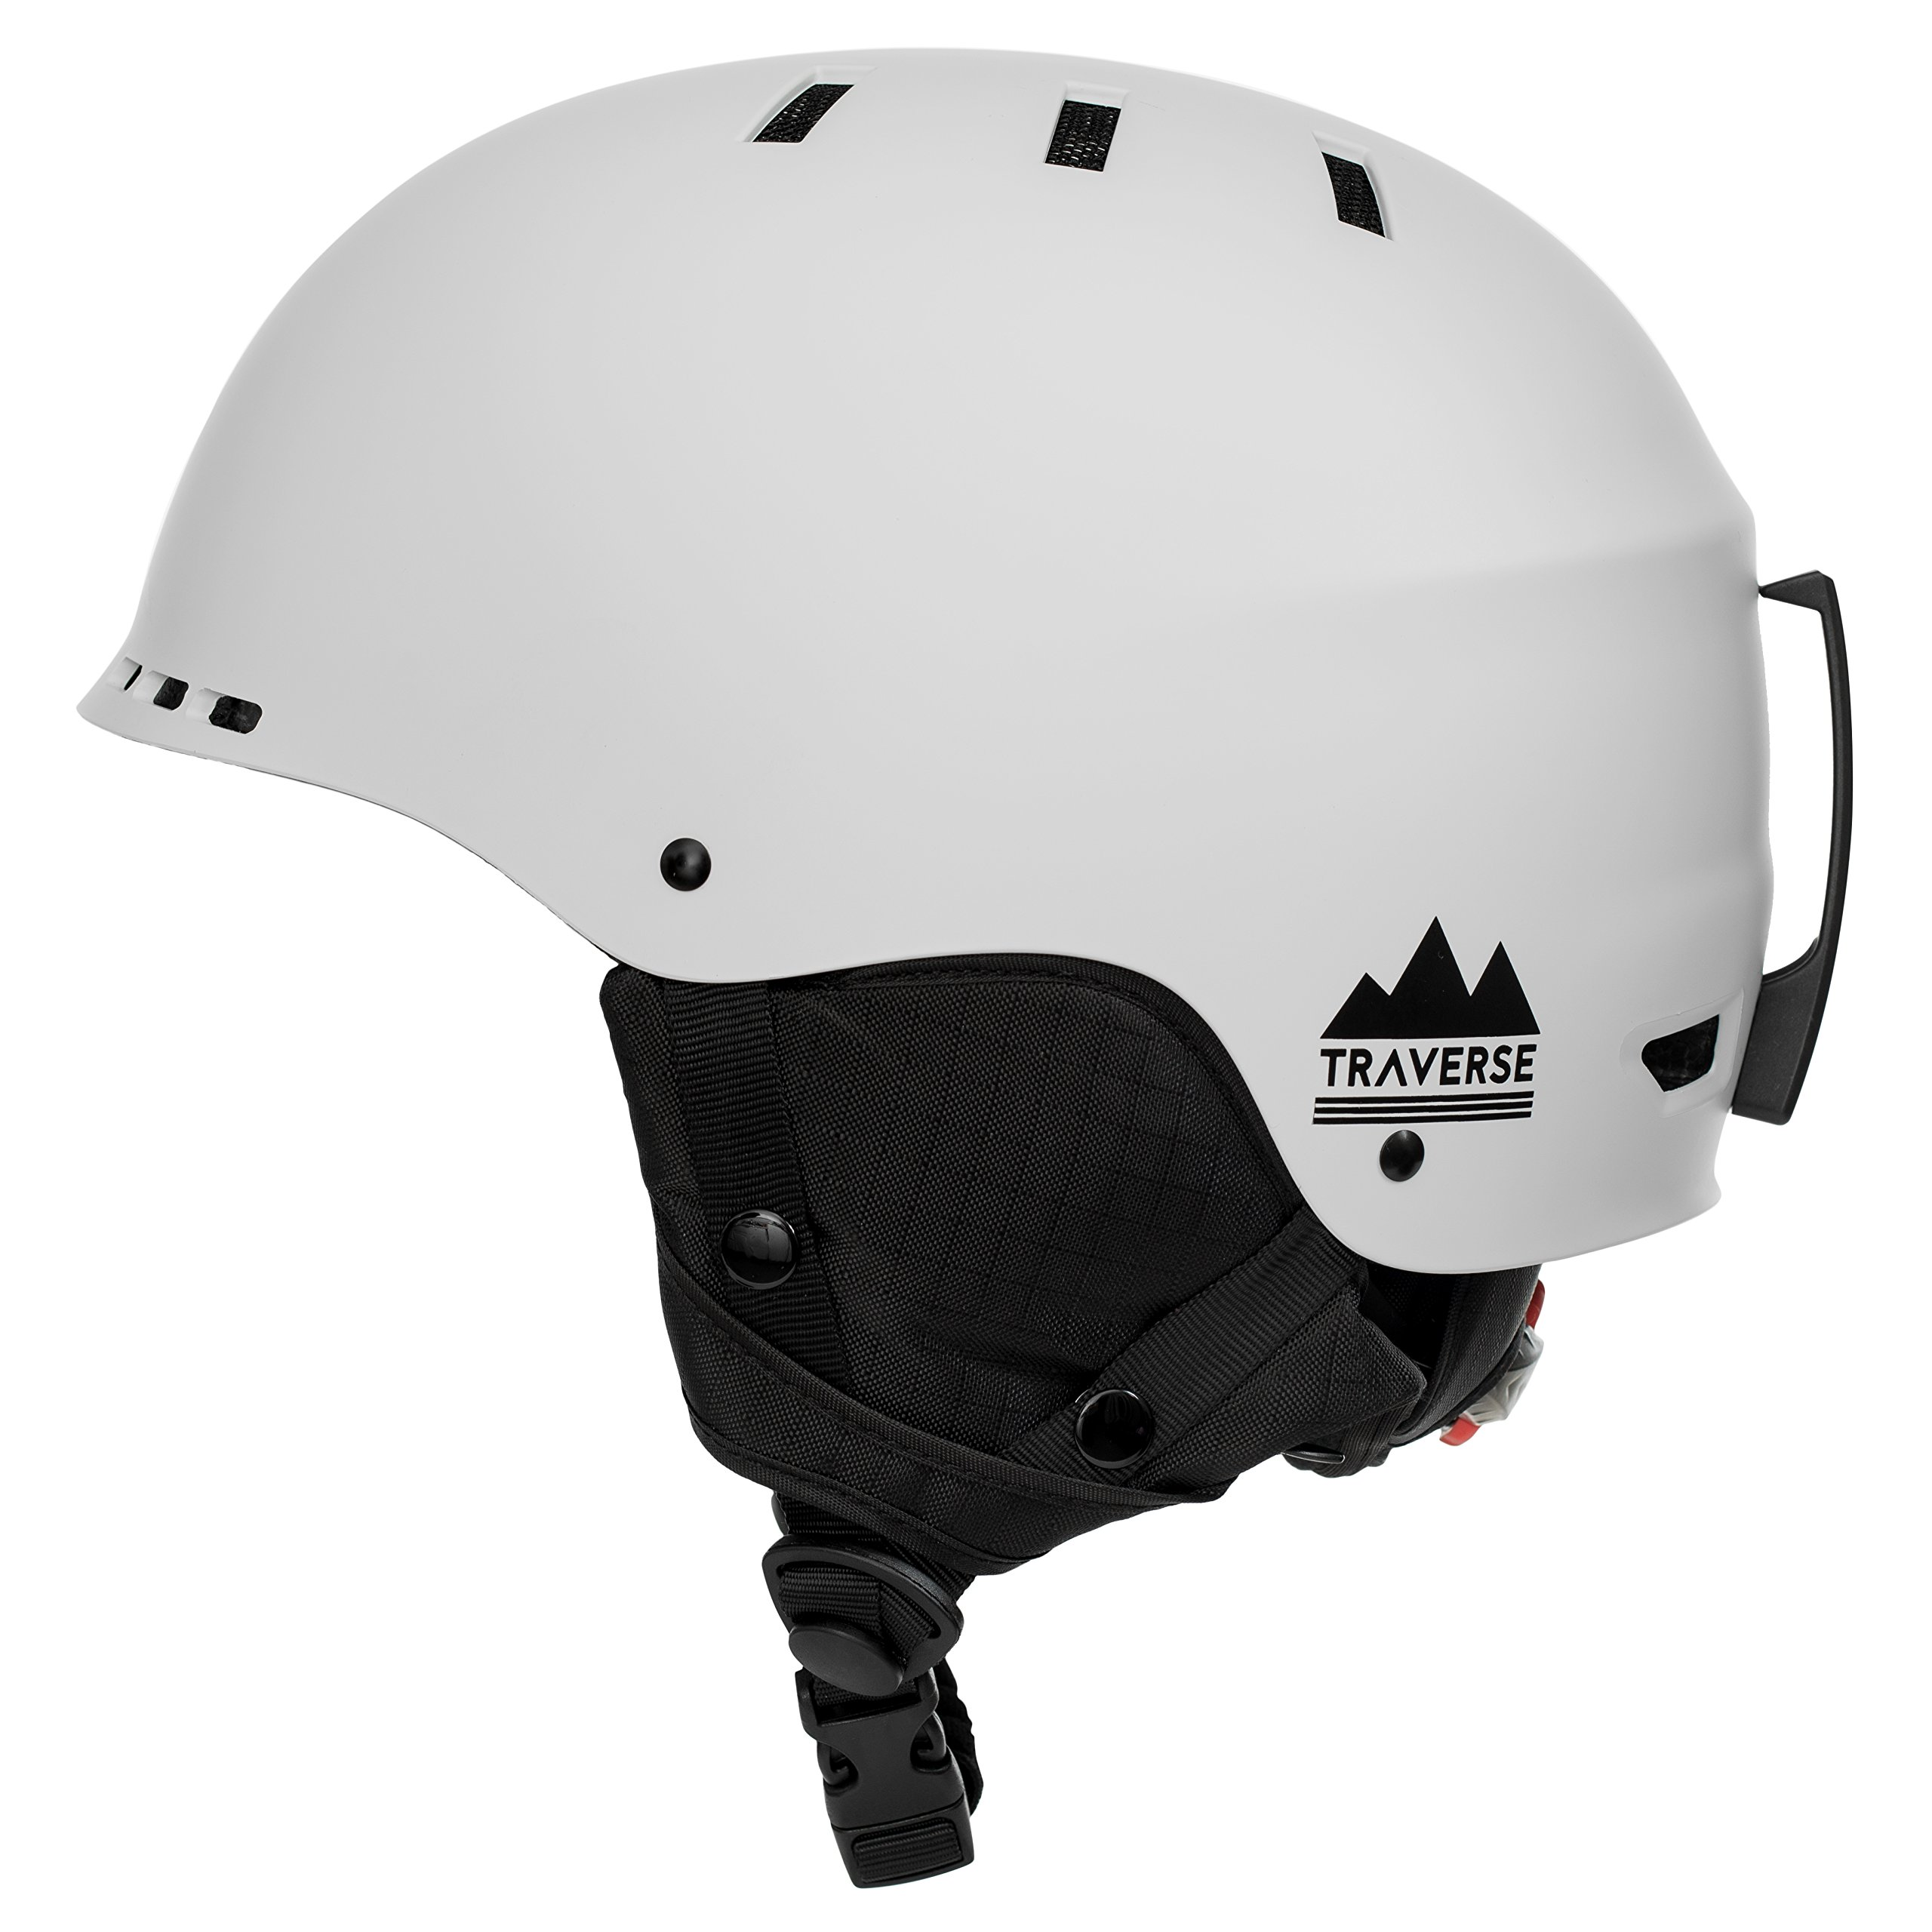 Traverse Sports 2-in-1 Convertible Ski & Snowboard/Bike & Skate Helmet